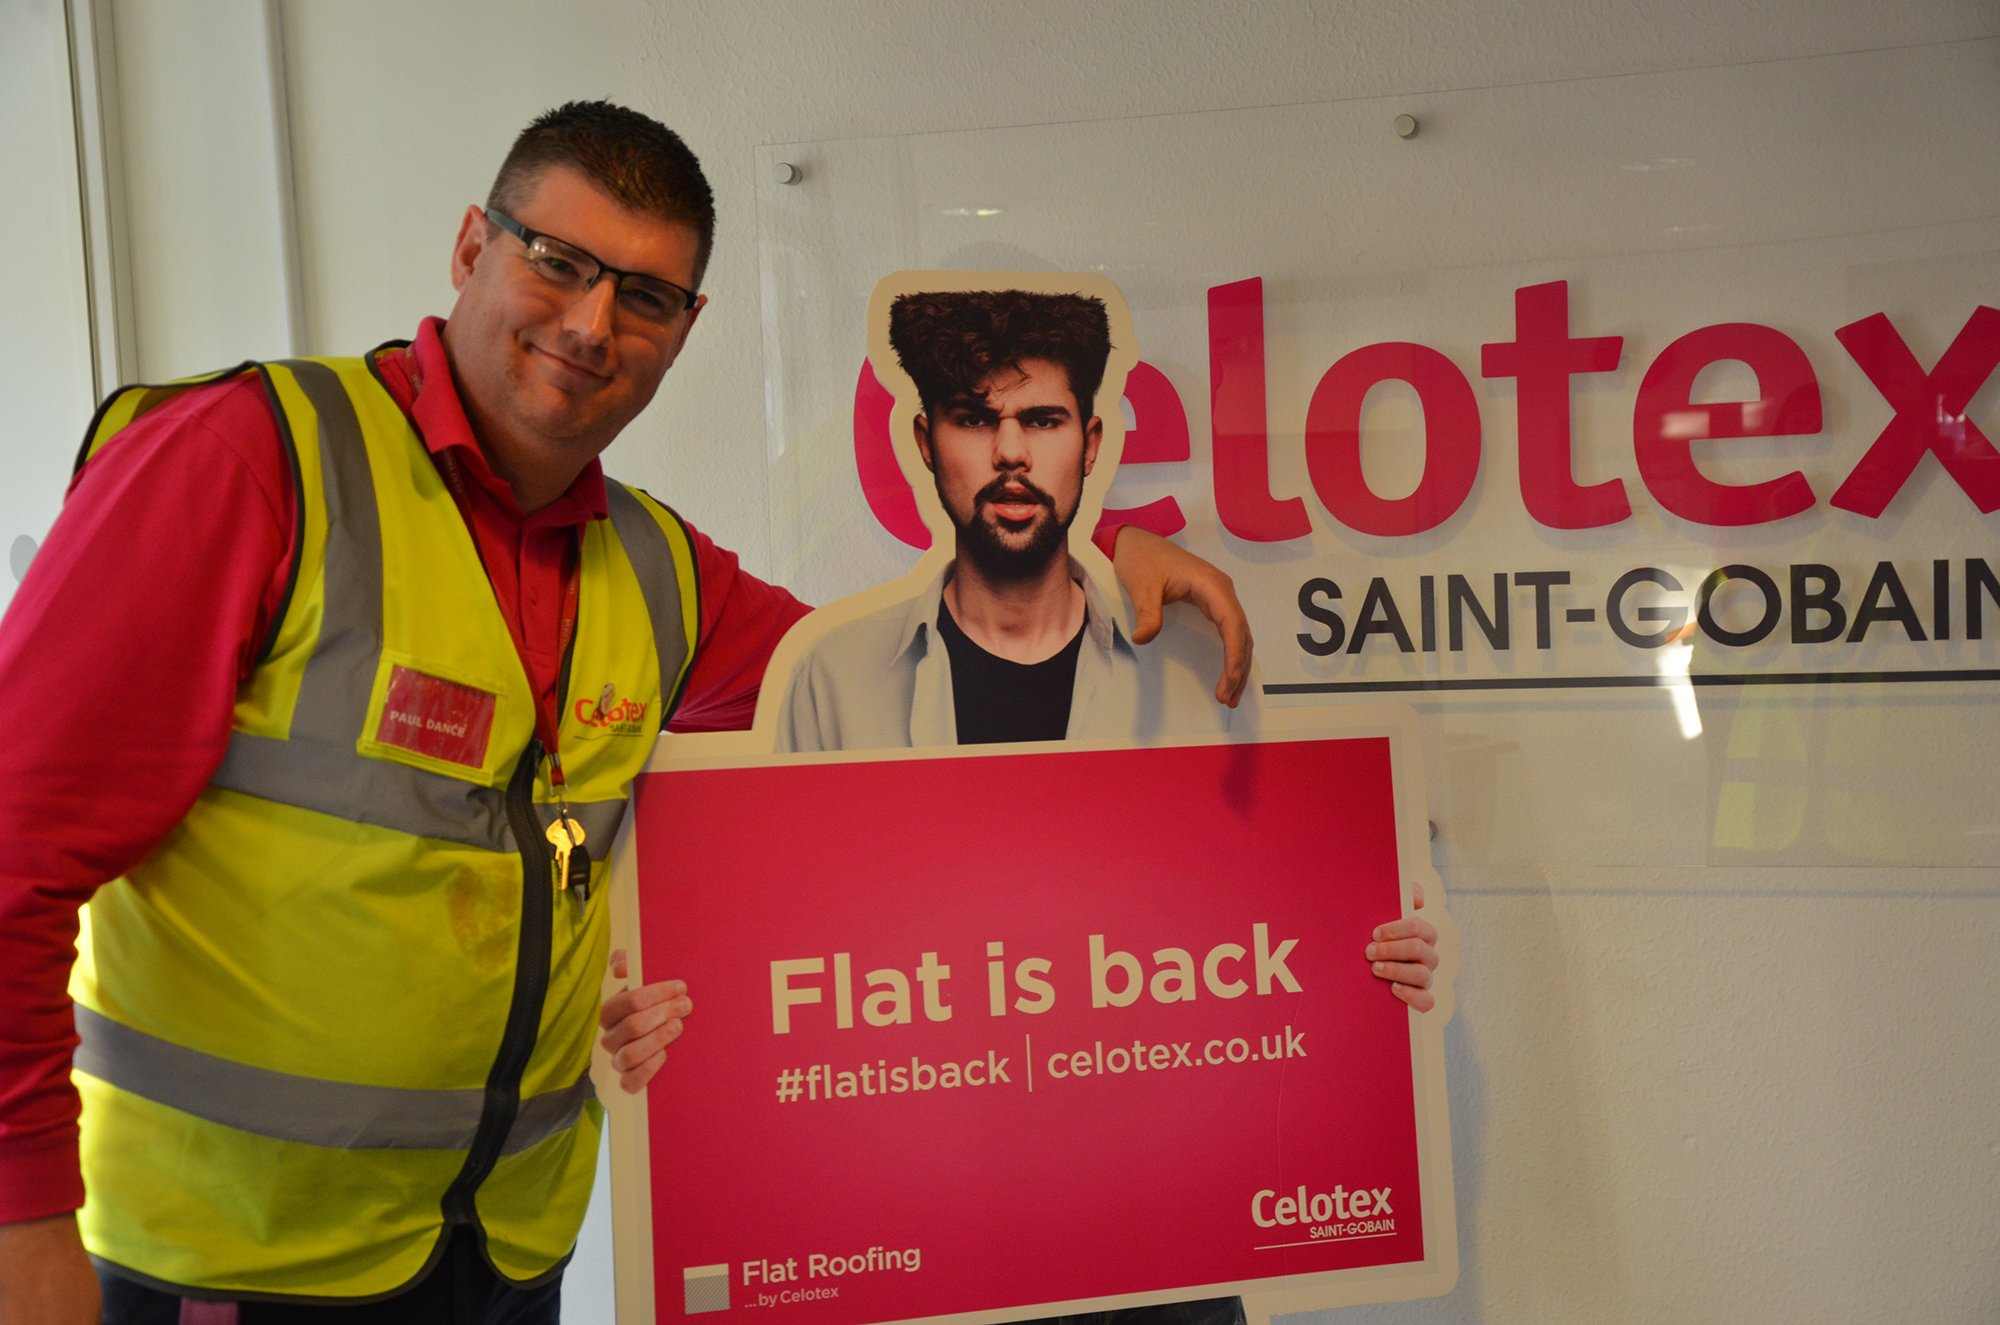 Our Manufacturing Manager, Paul Dance with Cardboard Stu! Paul supports #flatisback! https://t.co/asHGQACZvK https://t.co/9jDiwQY6BG